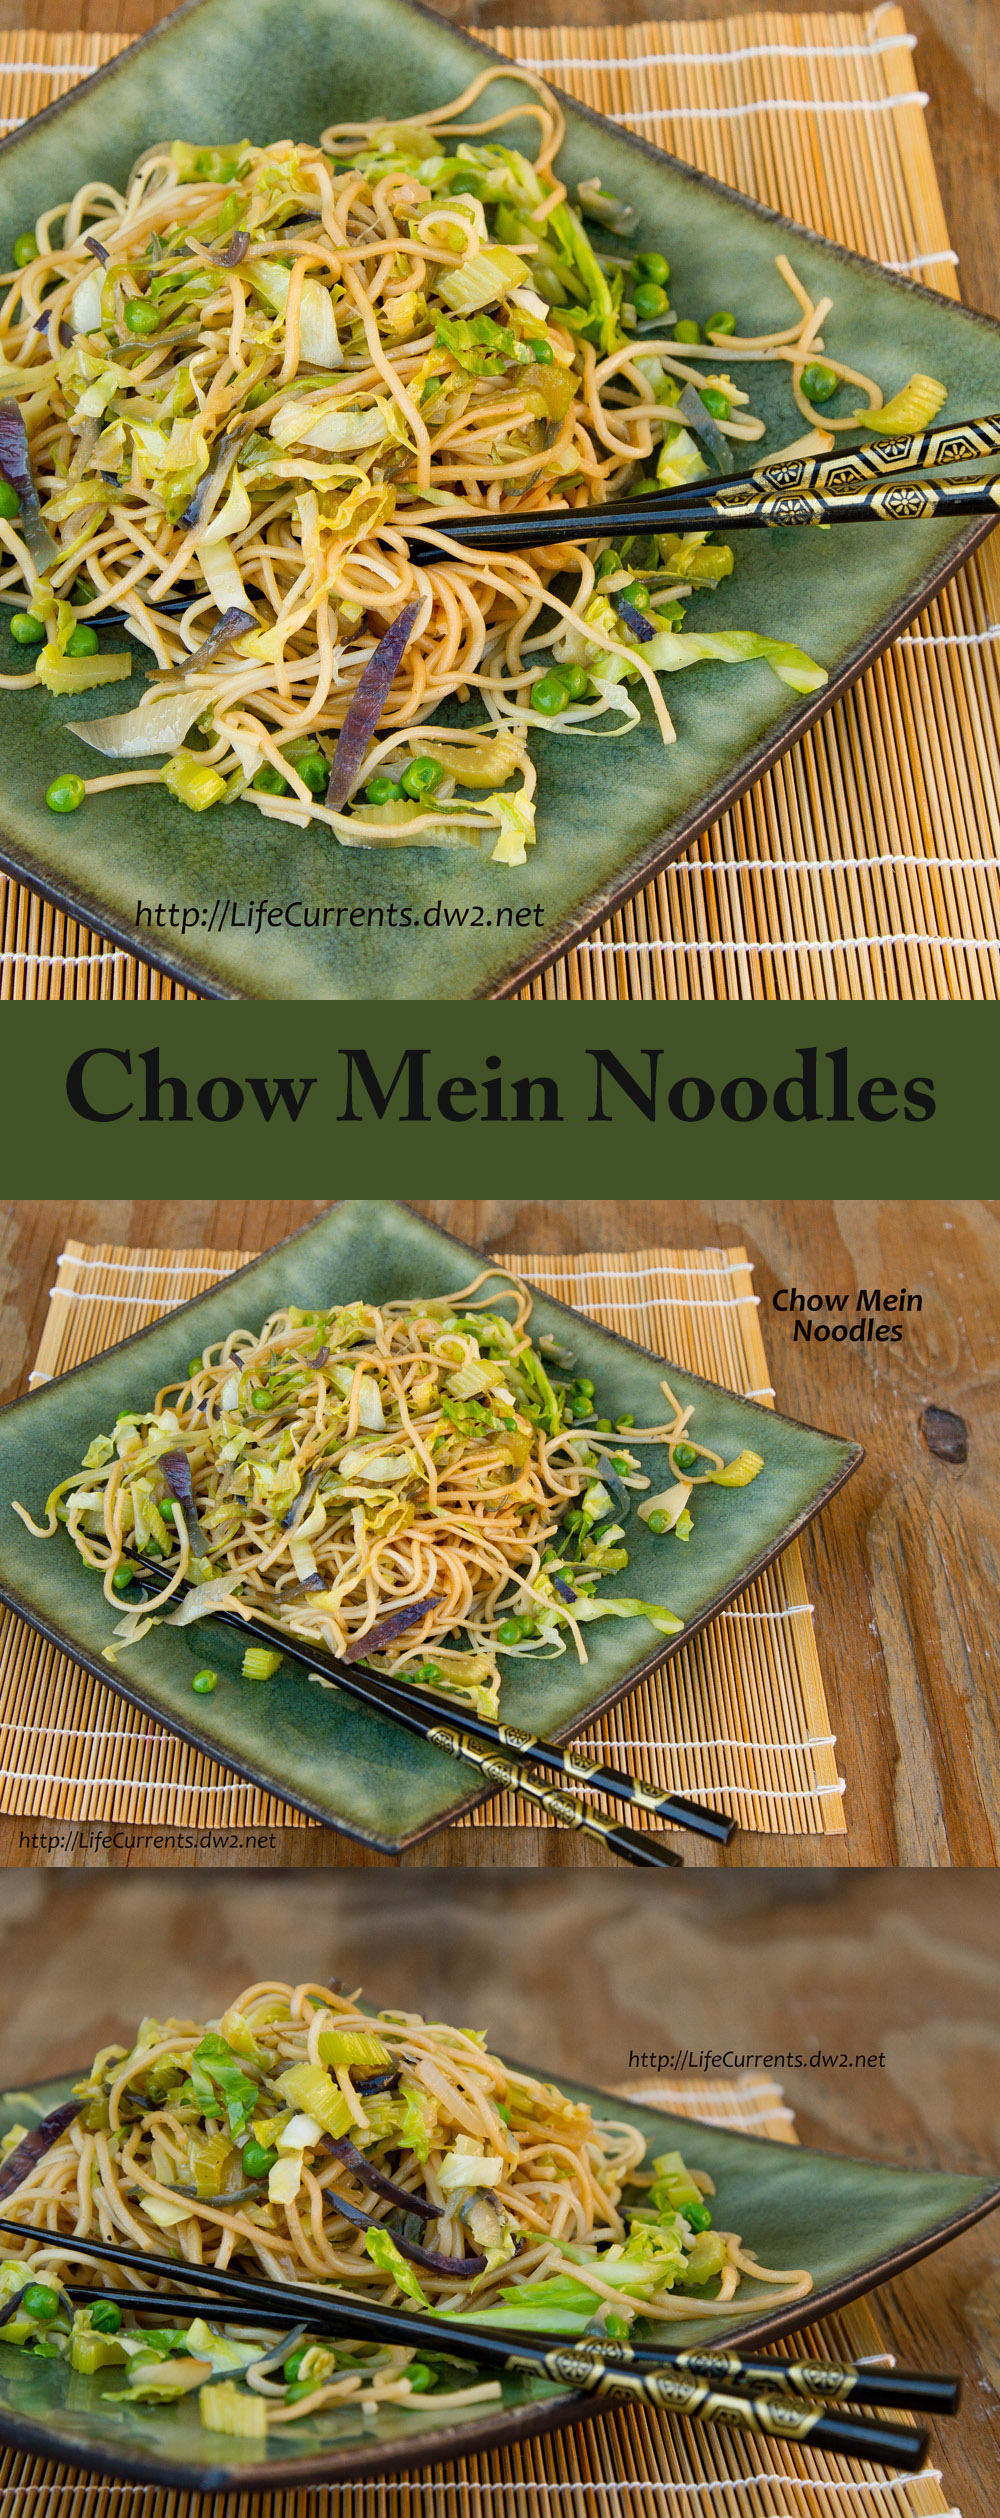 Chow Mein Noodles - These Chow Mein Noodles (or yakisoba as my husband likes to call them) are quick and easy to make, and super delicious